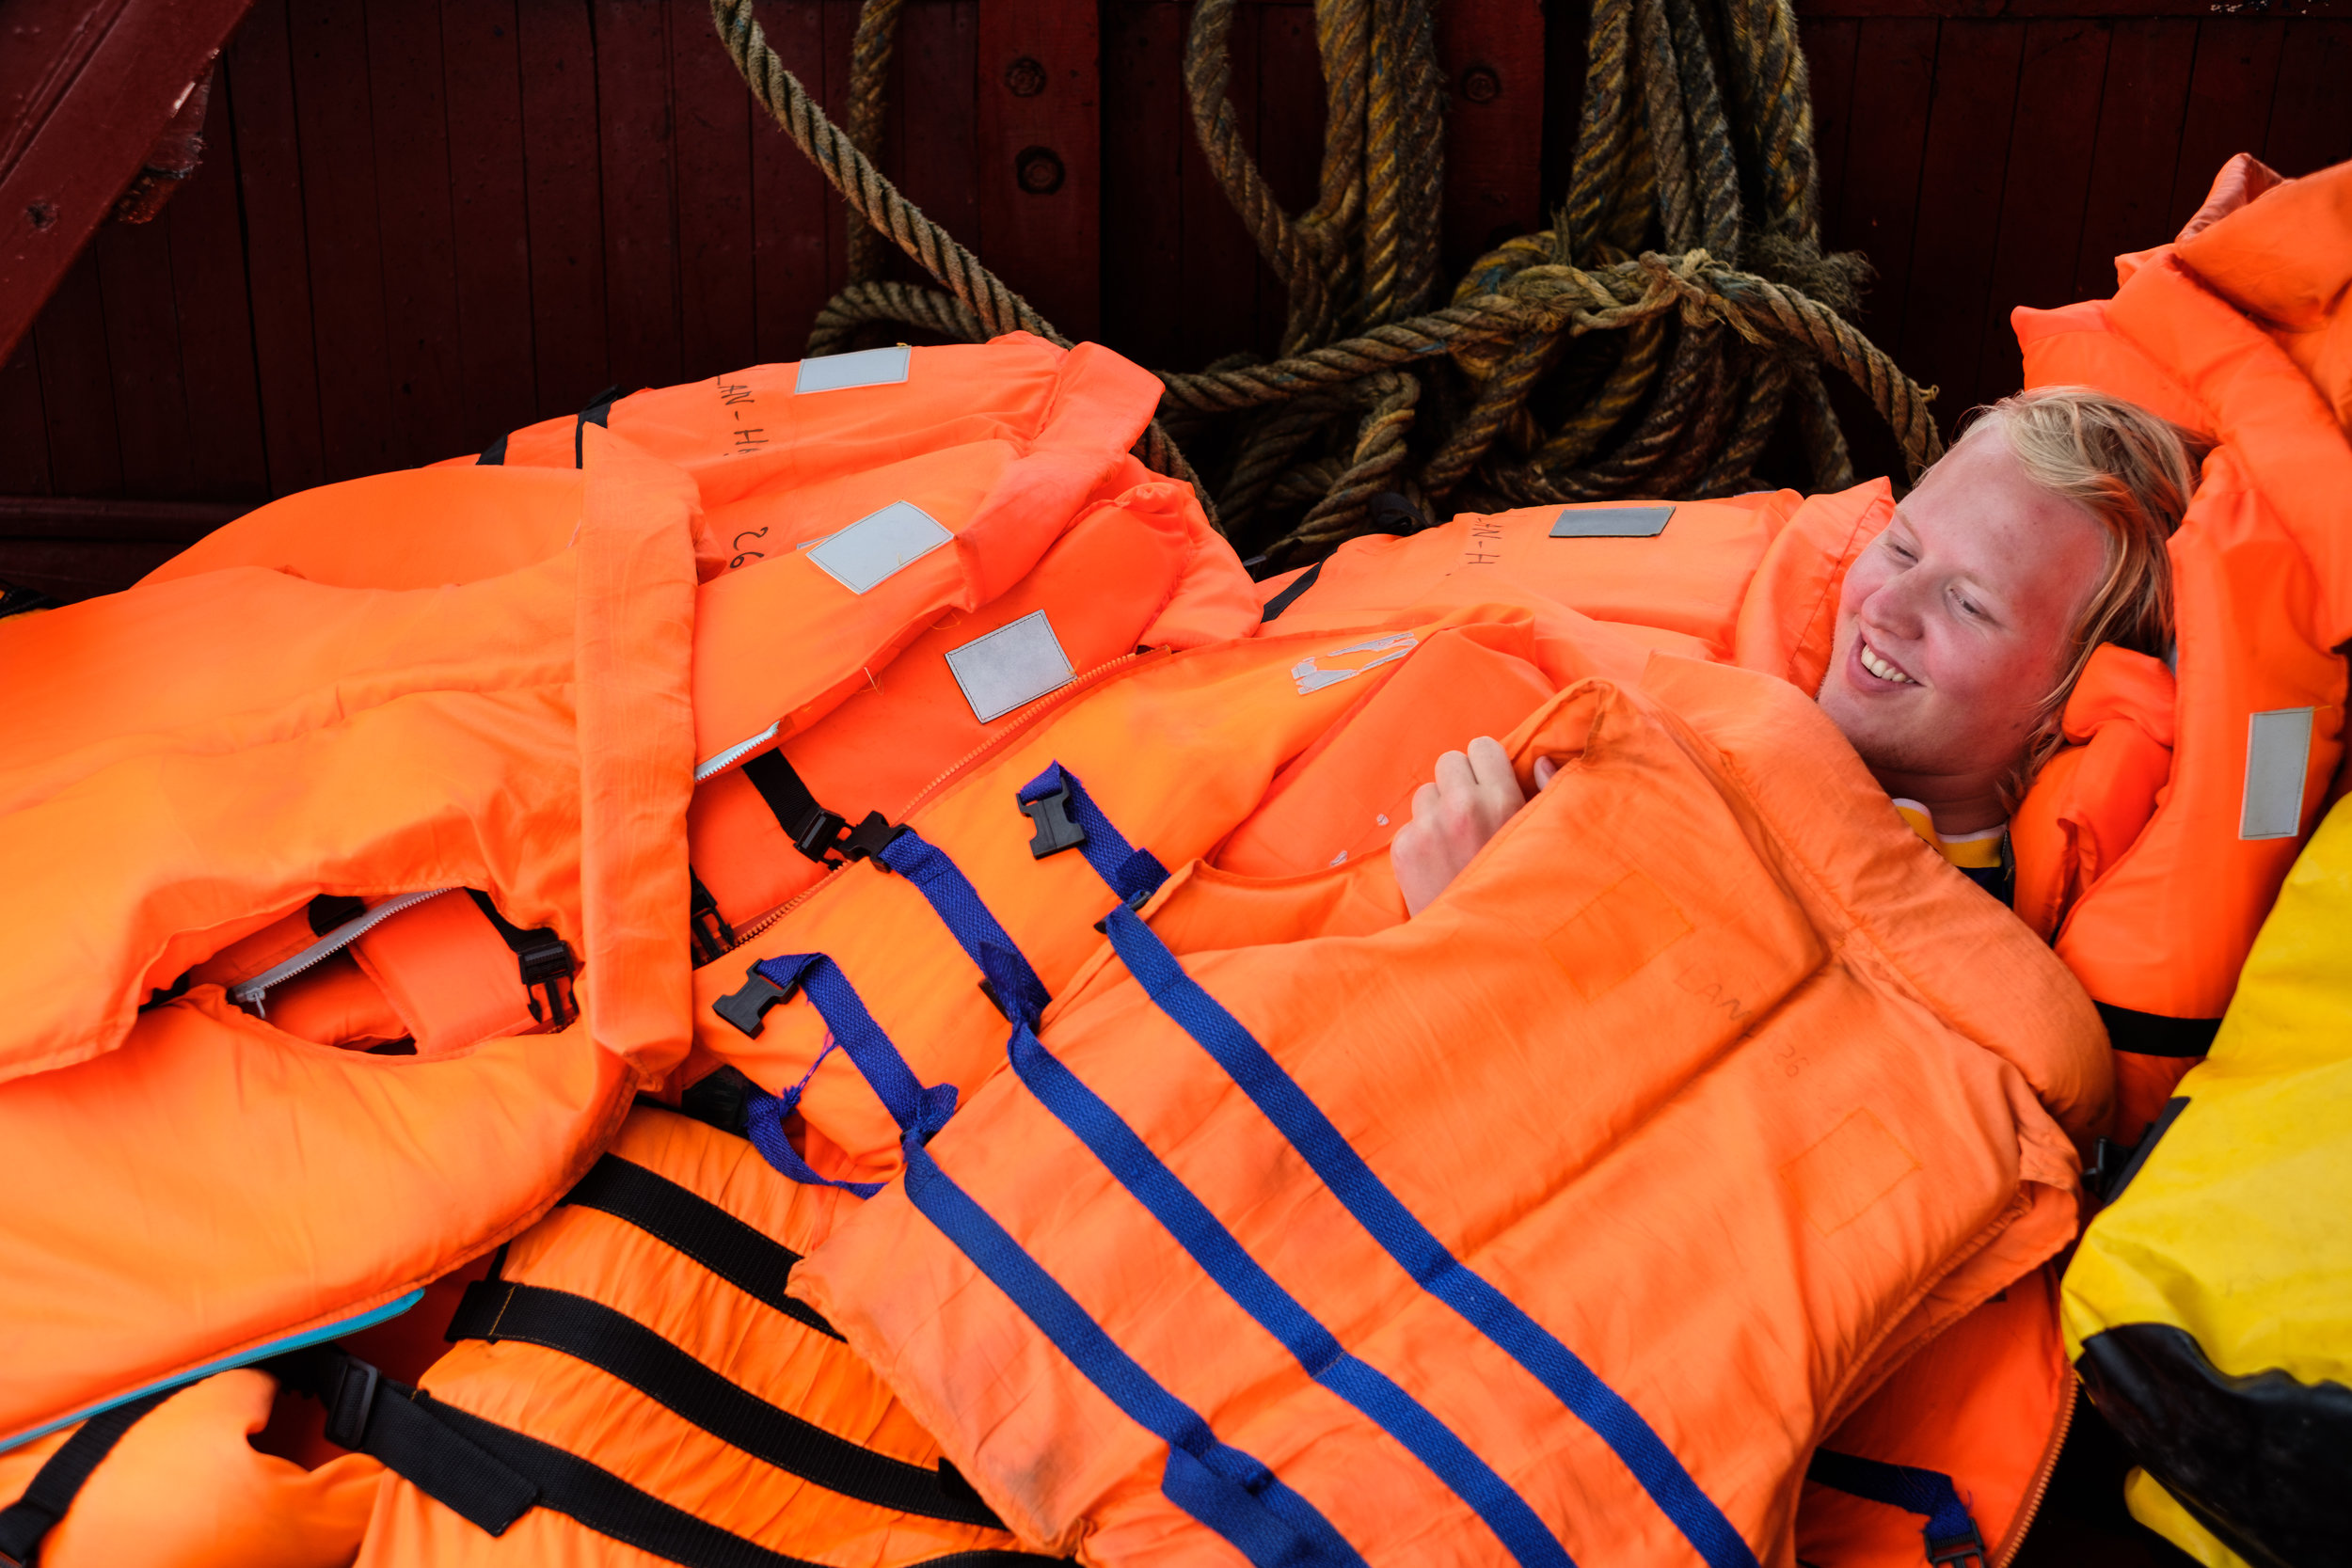 A Norwegian traveler takes a rest under the life jacket on a vessel during a cruise on Lan Ha Bay in Vietnam